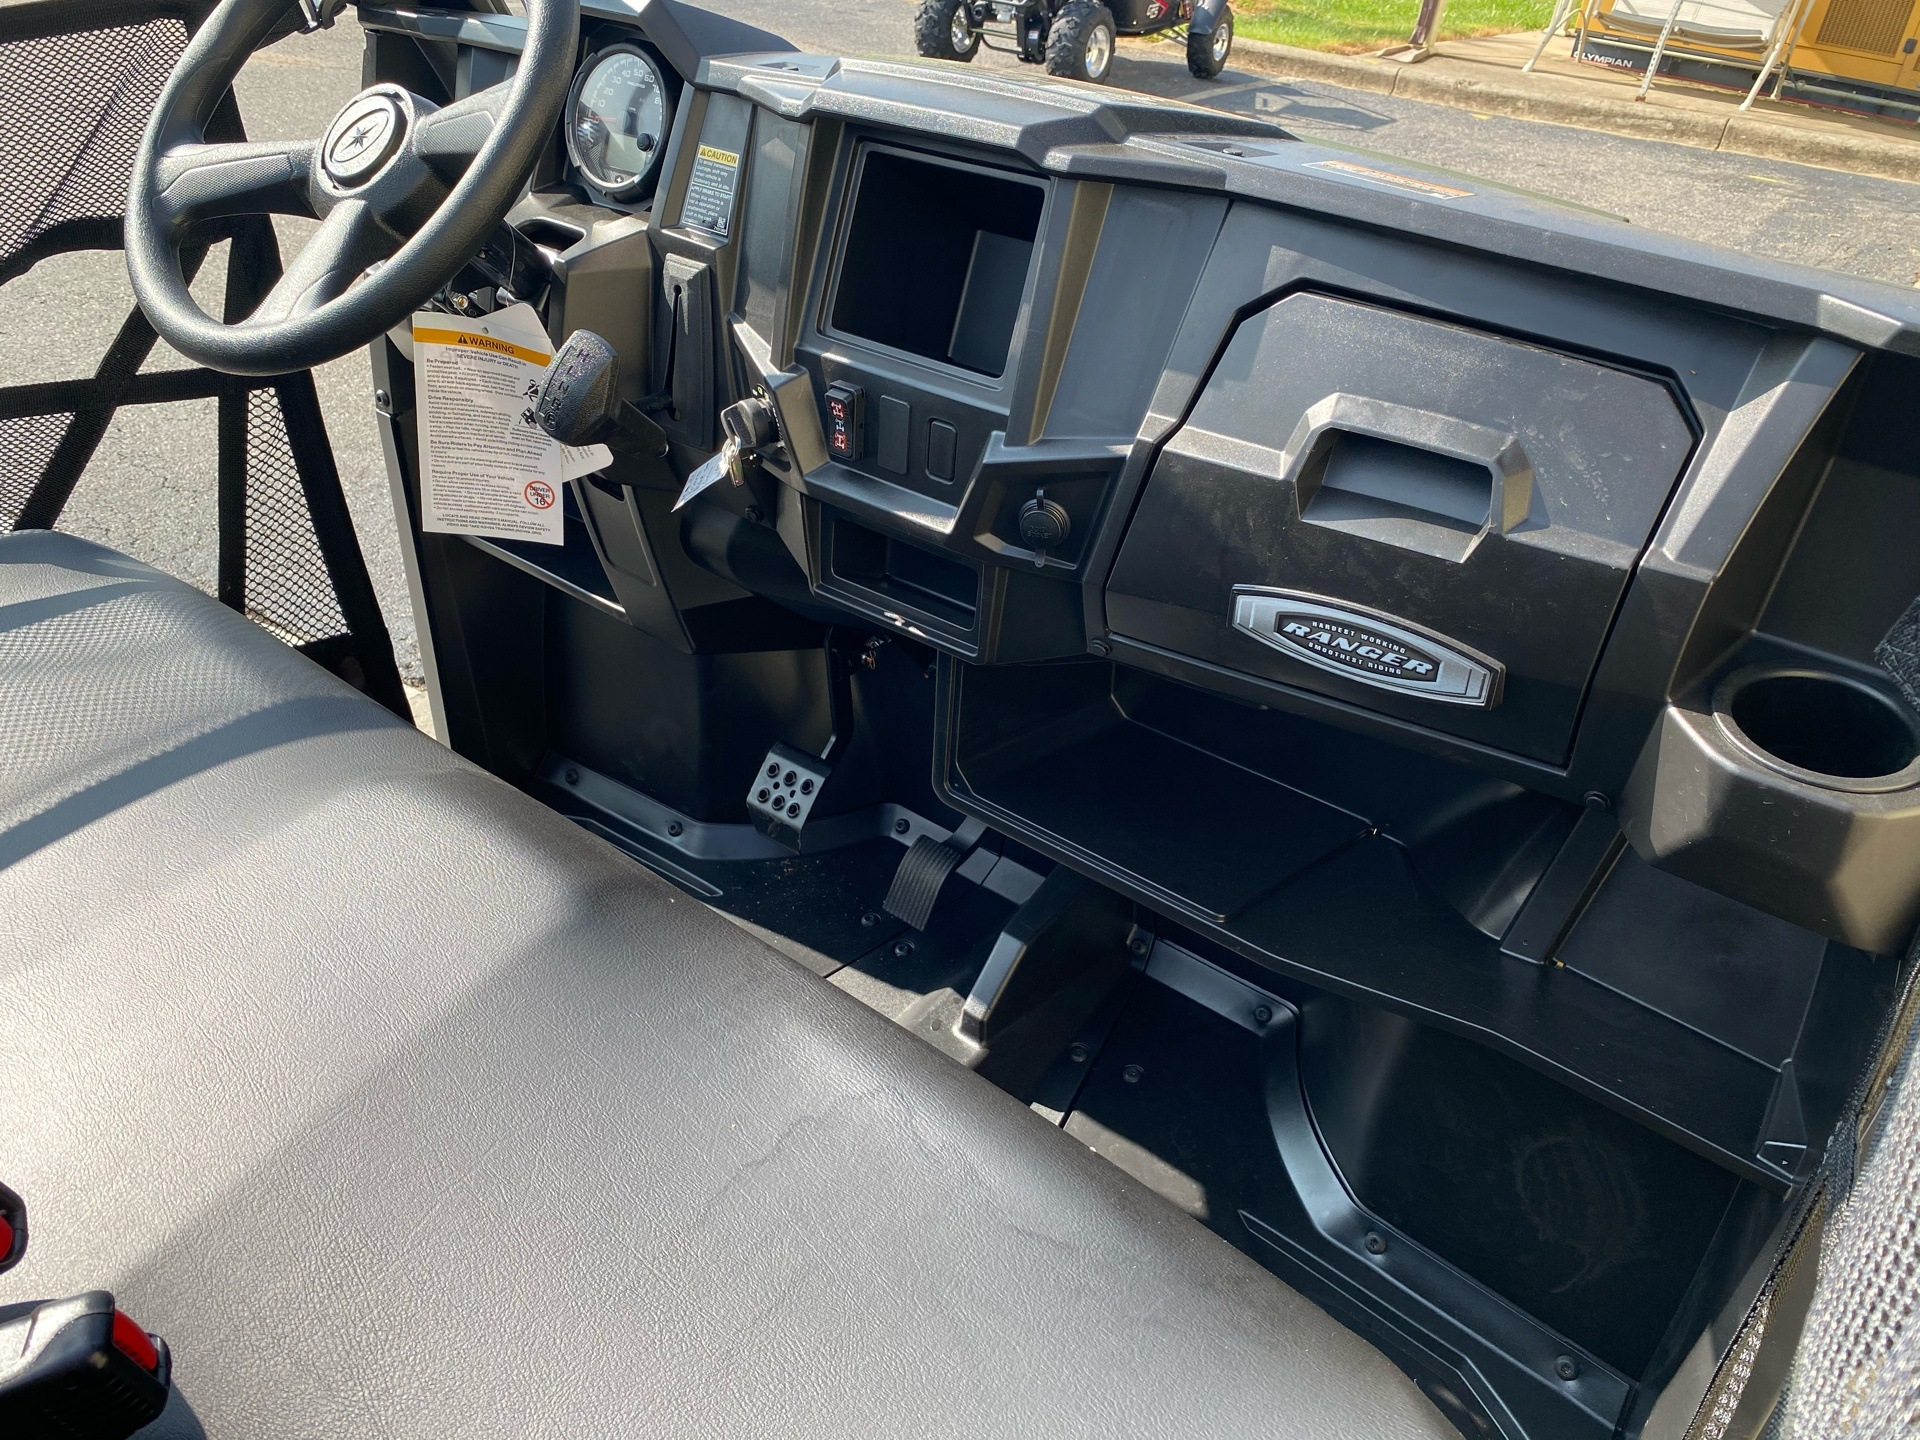 2021 Polaris Ranger 500 in Statesville, North Carolina - Photo 6